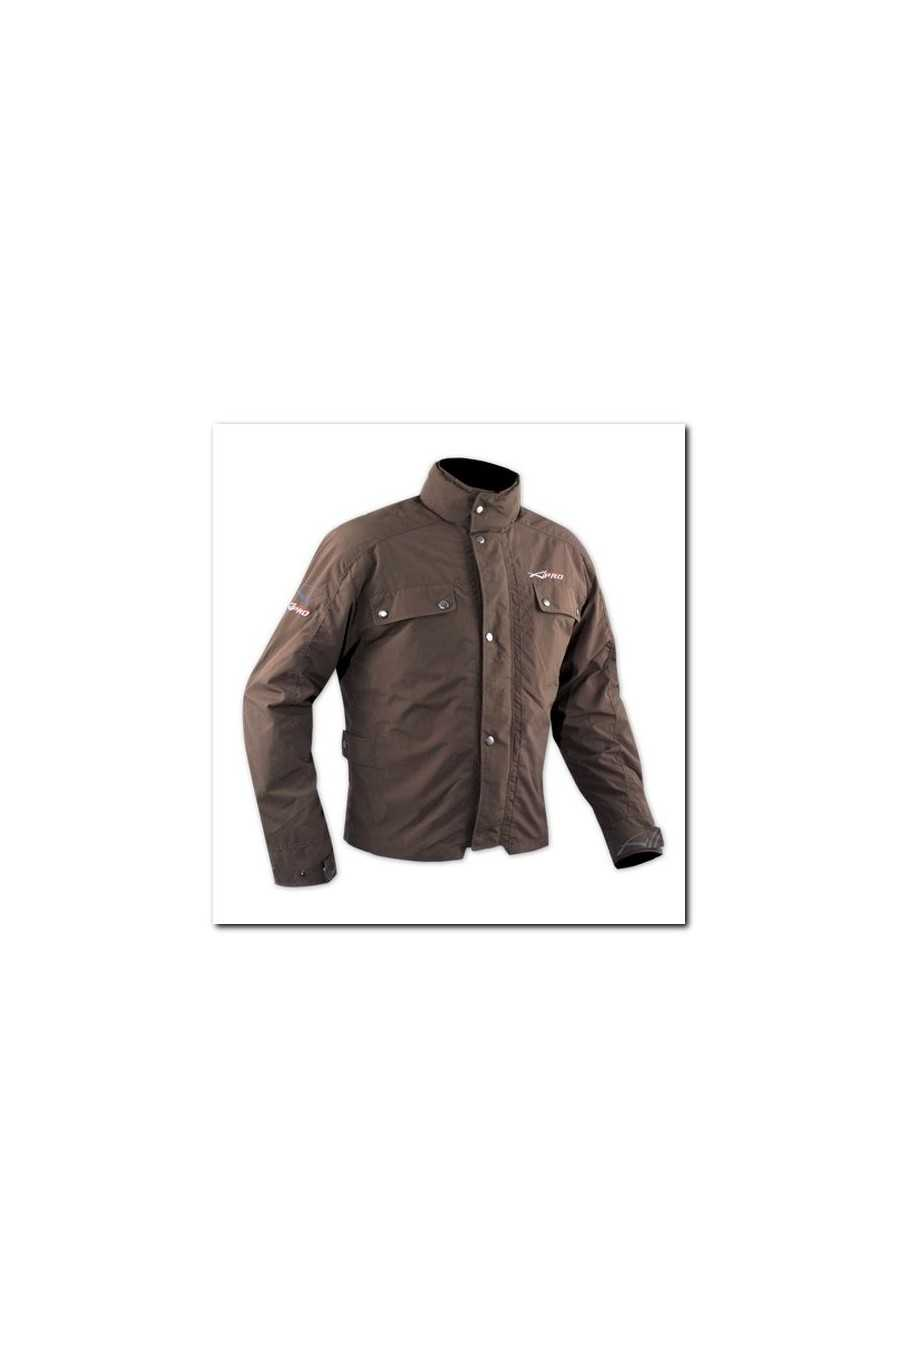 Giubbotto Moto A-Pro Piccadilly Brown